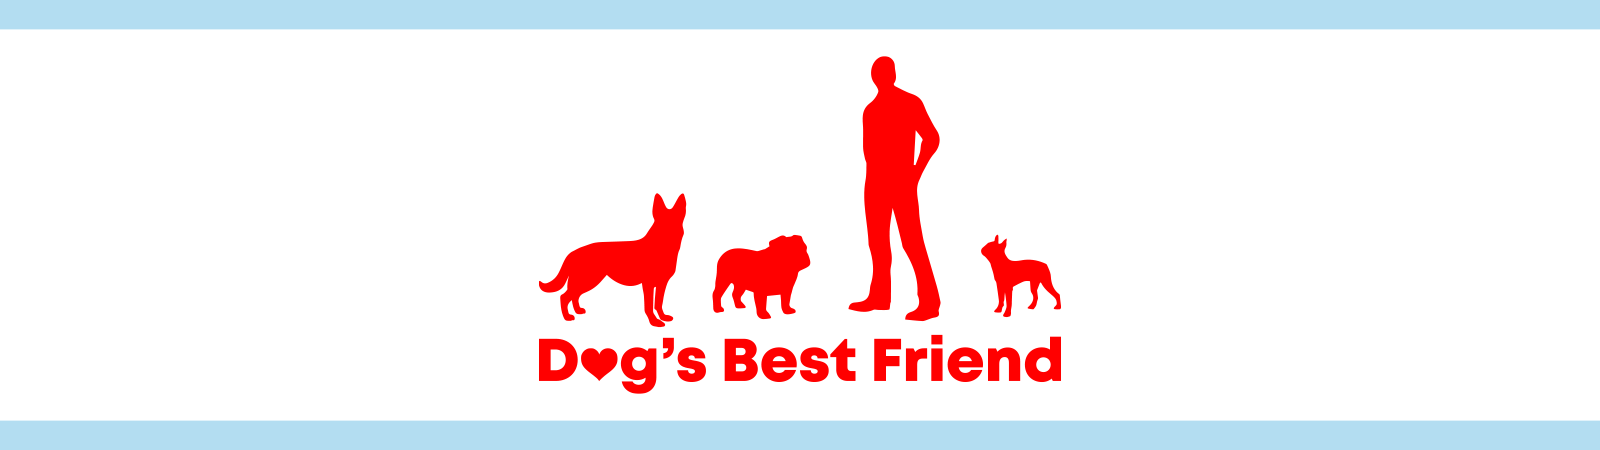 www.dogsbestfriend.co